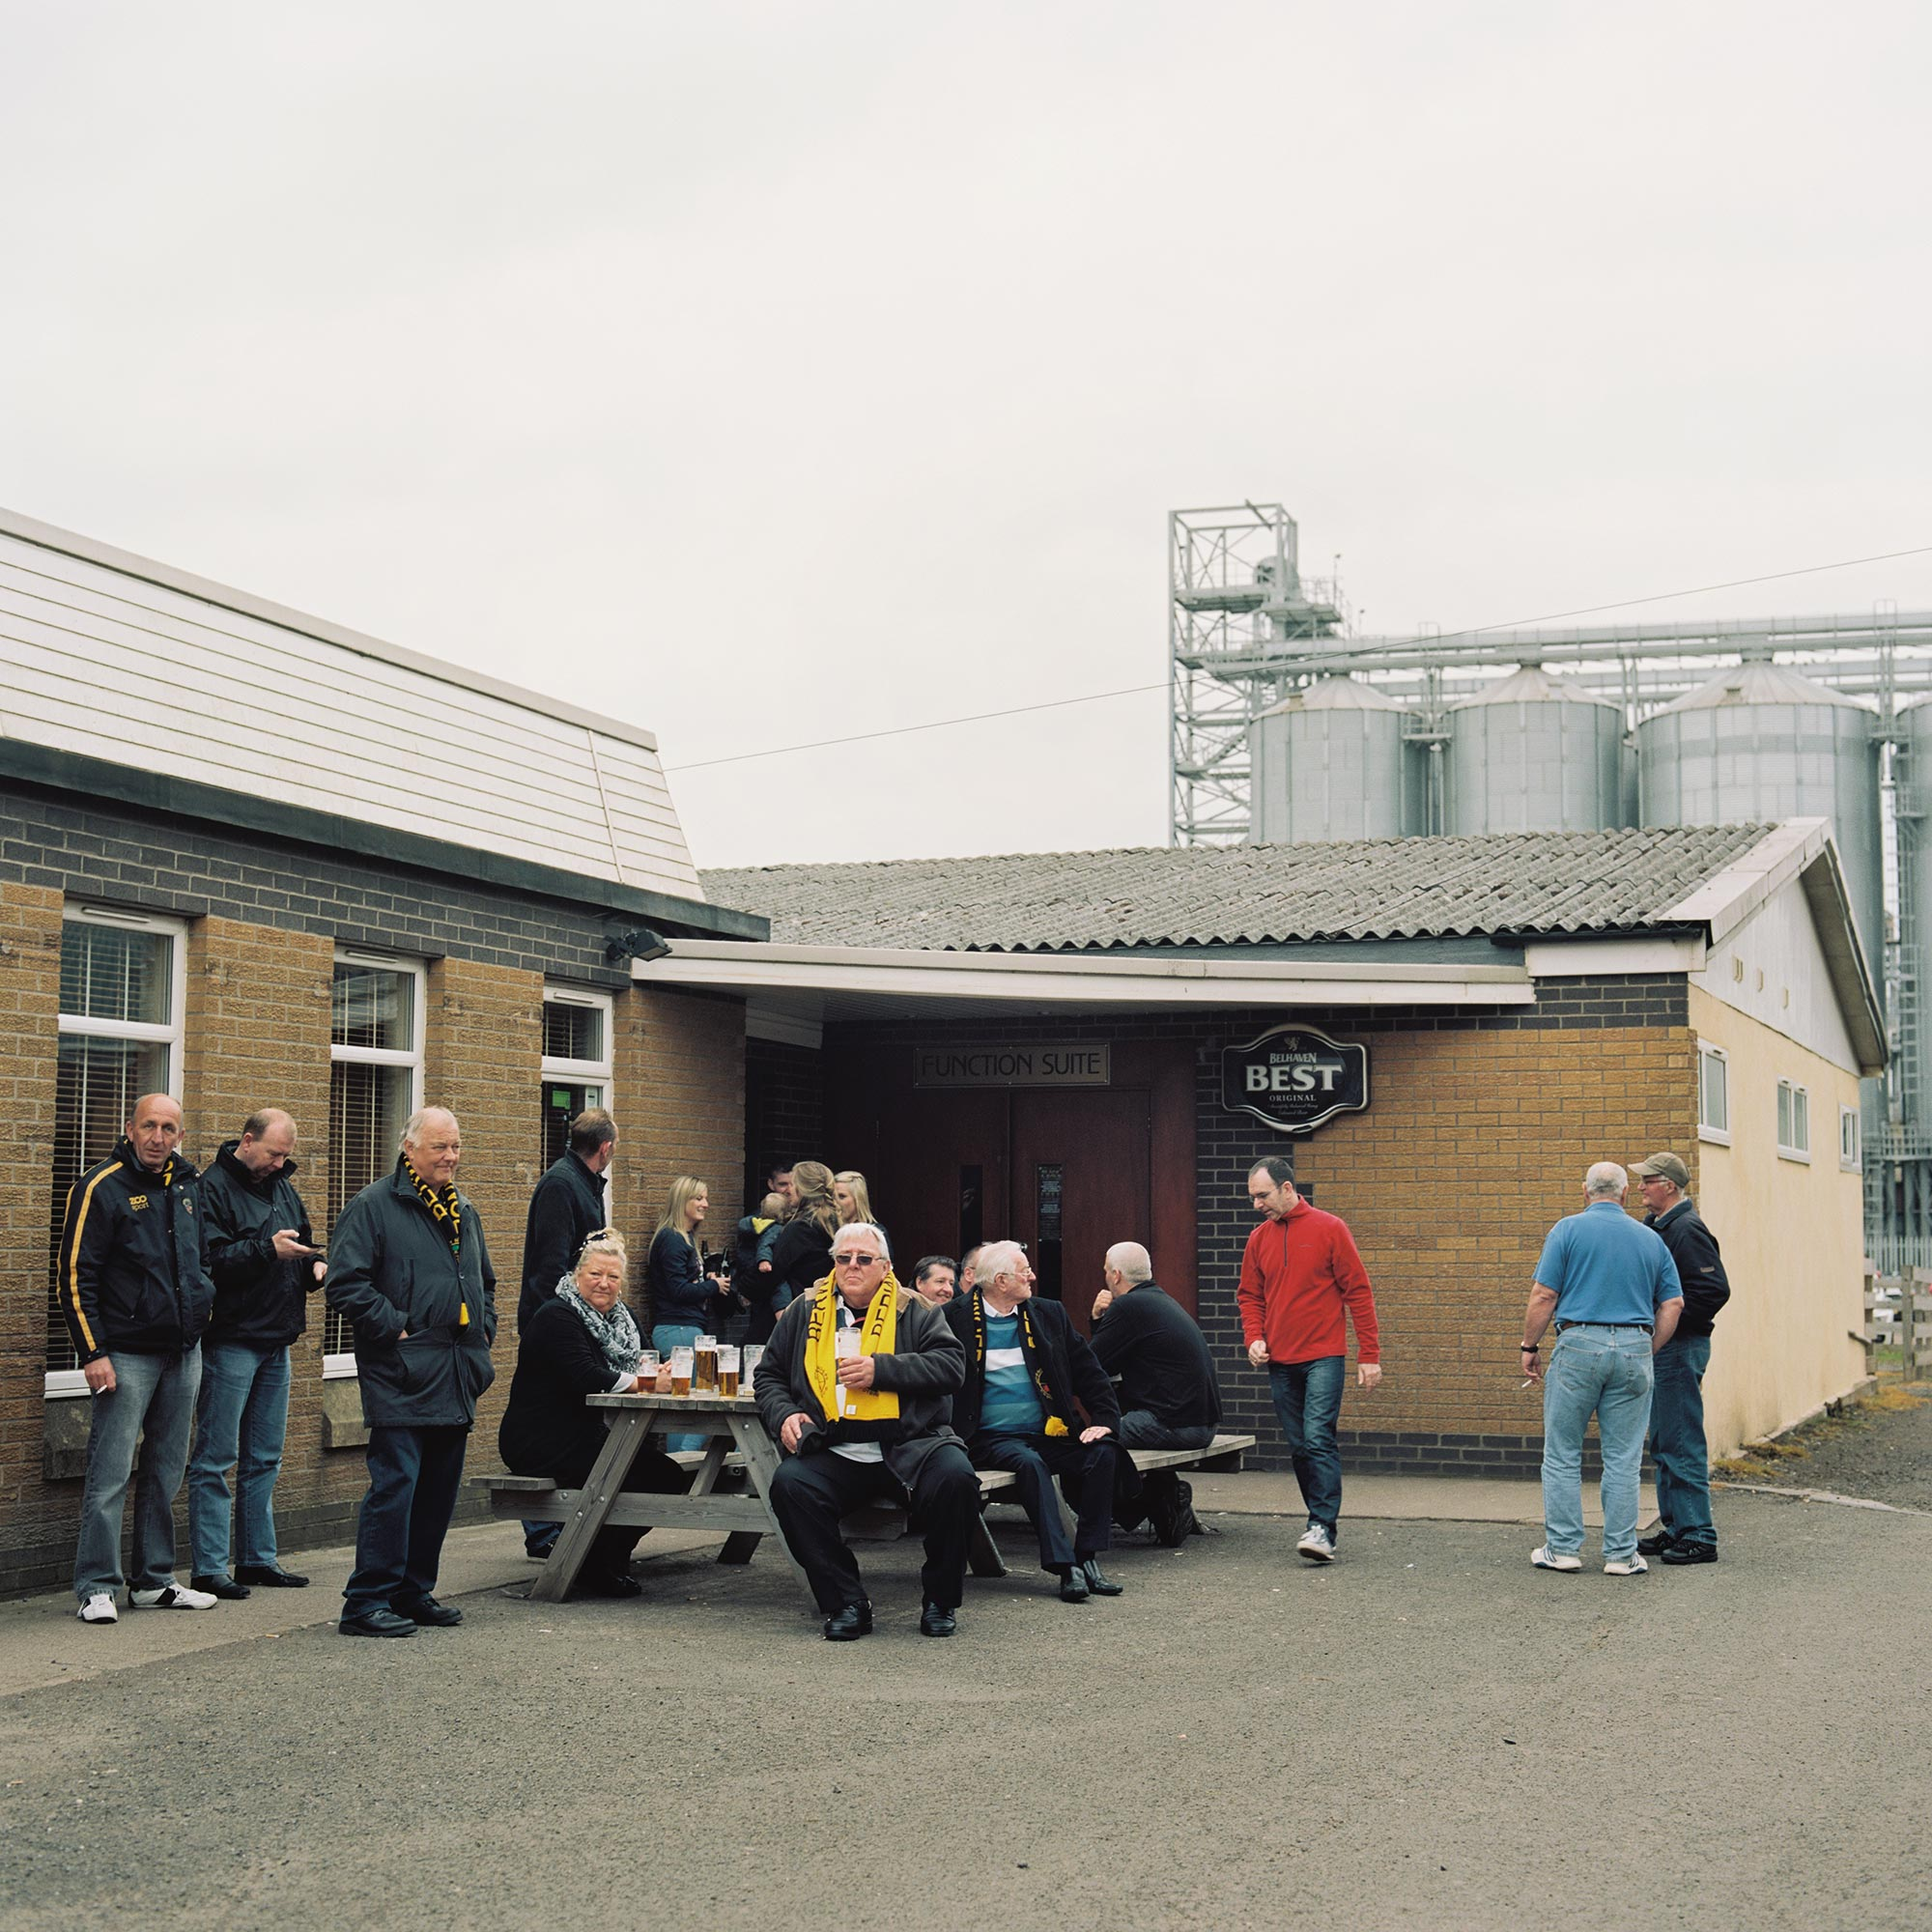 Berwick Rangers supporters wait to see their team play Peterhead in a Scottish League Two match at the Shielfield Park stadium